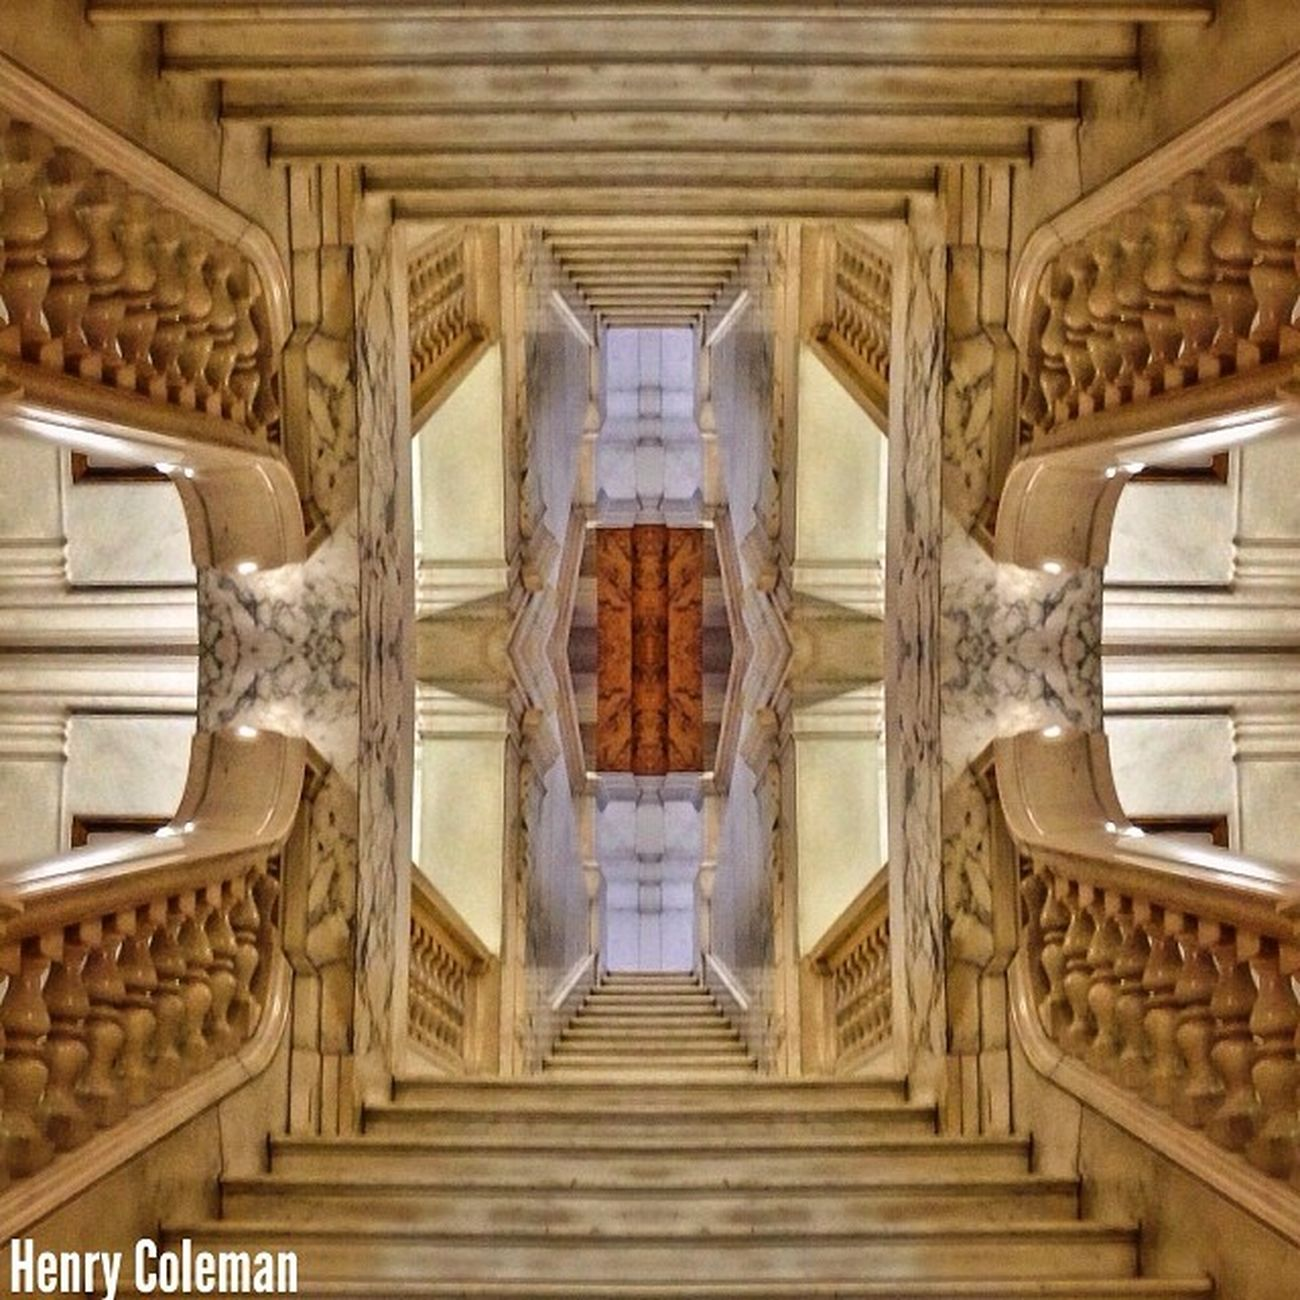 In Life there is nothing wrong with falling down and getting up! Failure is Giving Up on yourself! Chose a Path and Believe you can! This Capture was taken by the stairs of Camden Town Hall, and now with a flipped Edit. Udog_edit Udog_peopleandplaces Lovelondon London London_only Londonpop London_only_members Igerslondon Ig_london Ig_england Jj_edited Ig_europe Guesstination Streetshot_london Internationalgrammers Ig_europe_london The_photographers_emporium Rising_masters Lom_ryqm Icu_britain Streetshot_london Splendid_editz